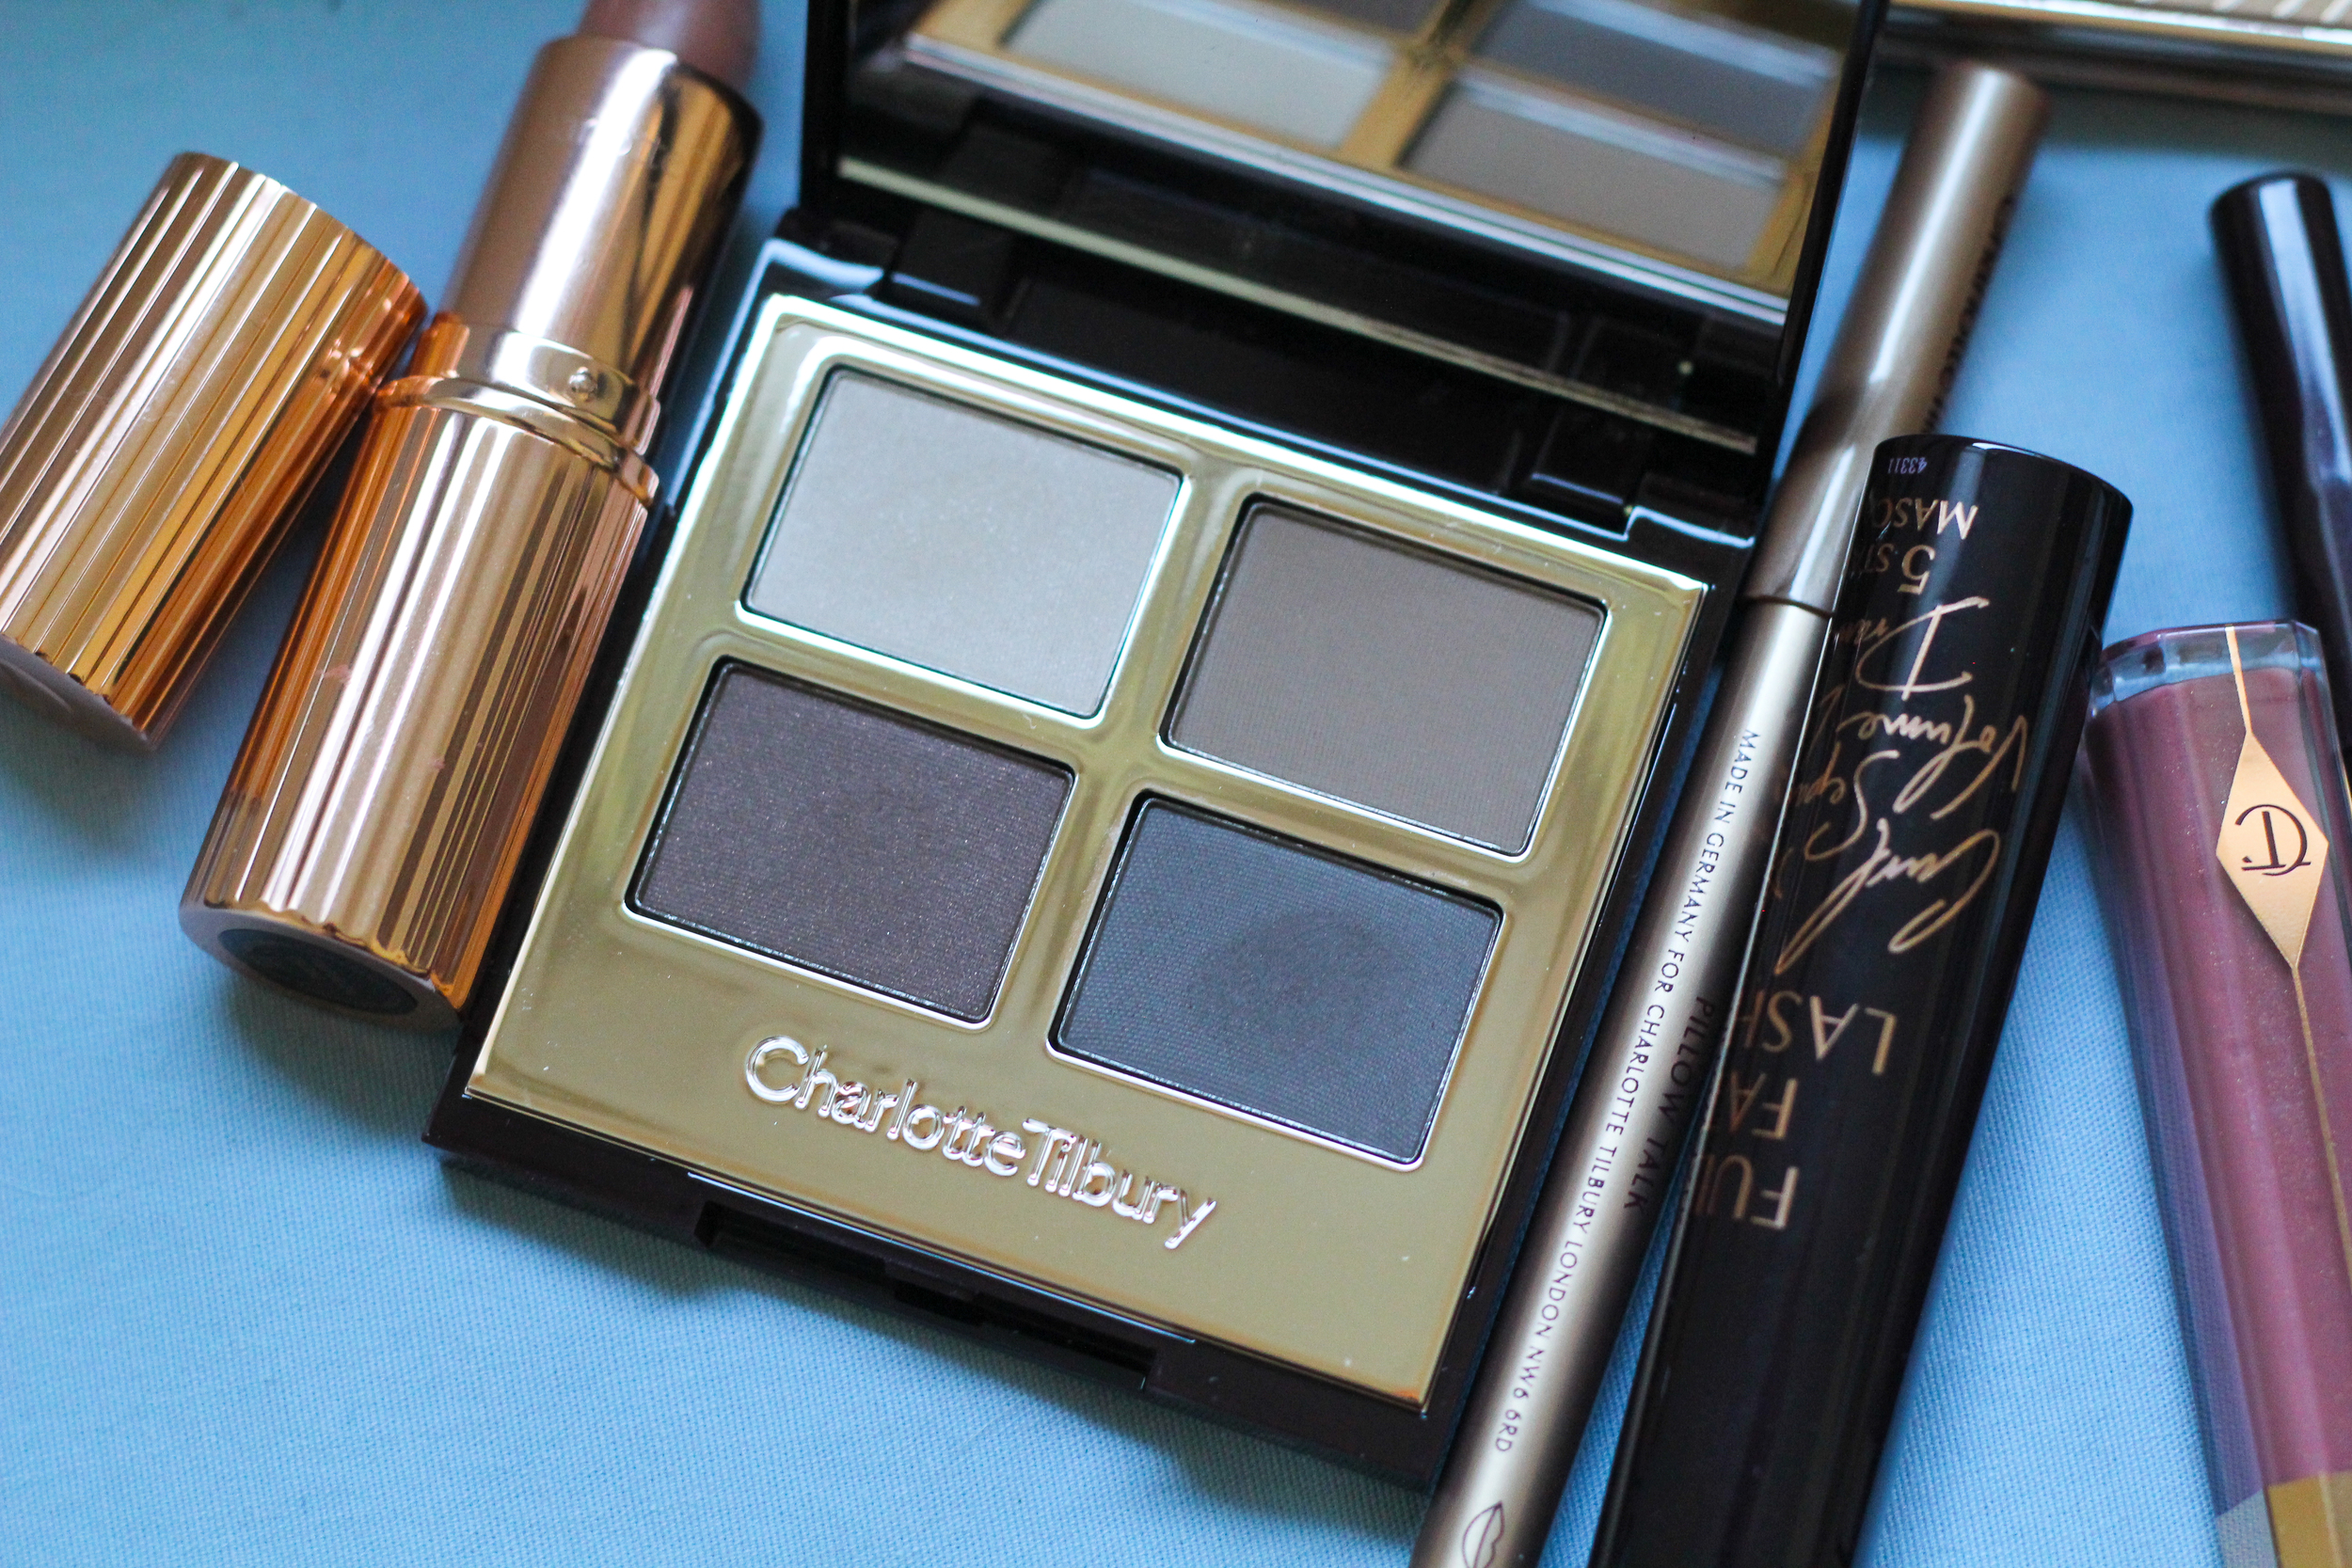 The Sophisticate Luxury Eye Palette Charlotte Tilbury.